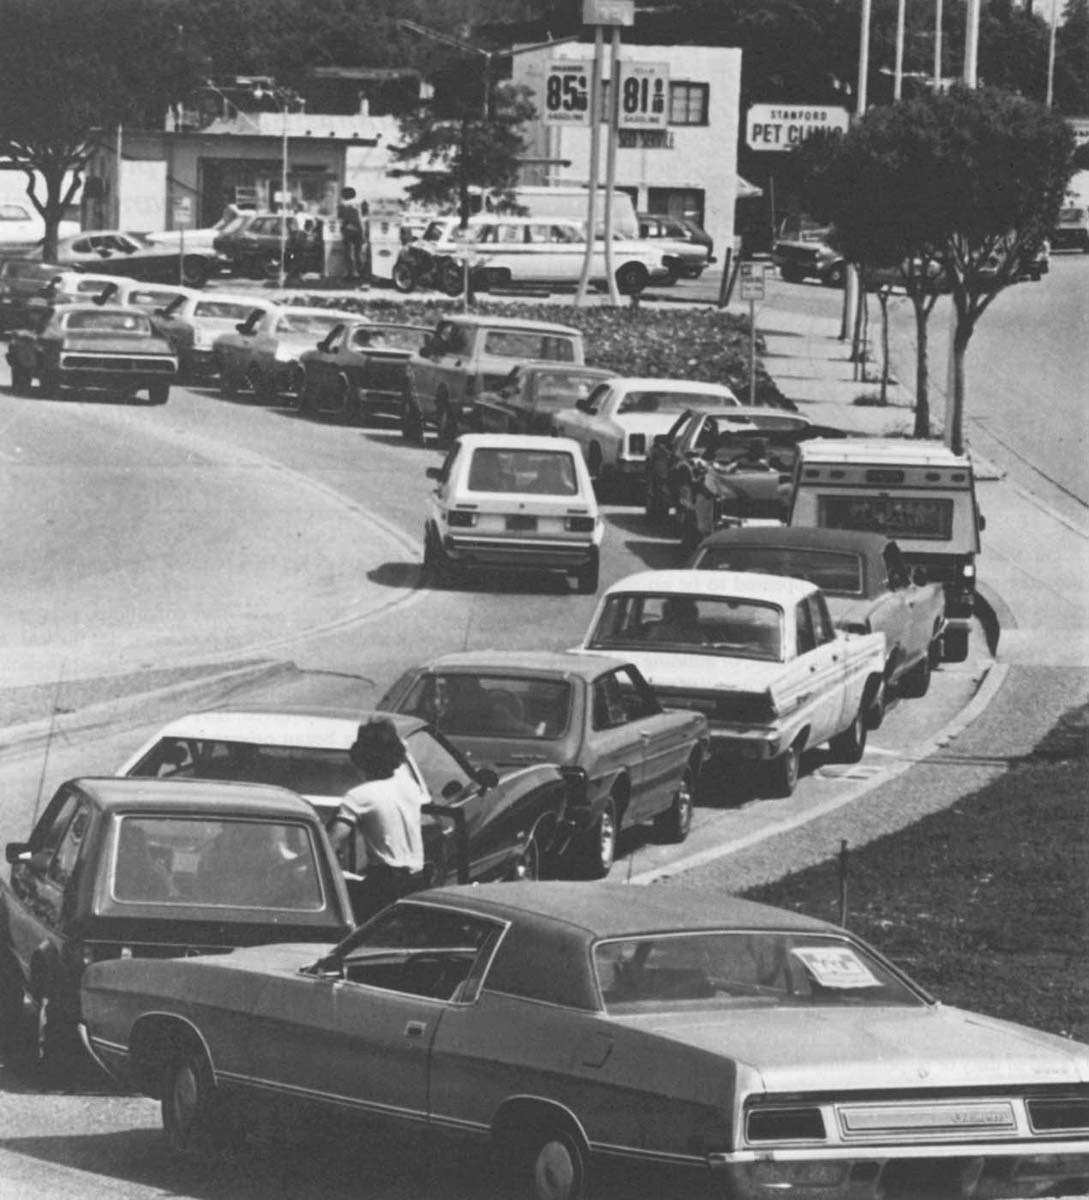 AMERICANS WAIT IN LINE FOR GAS DURING 1979 SHORTAGES